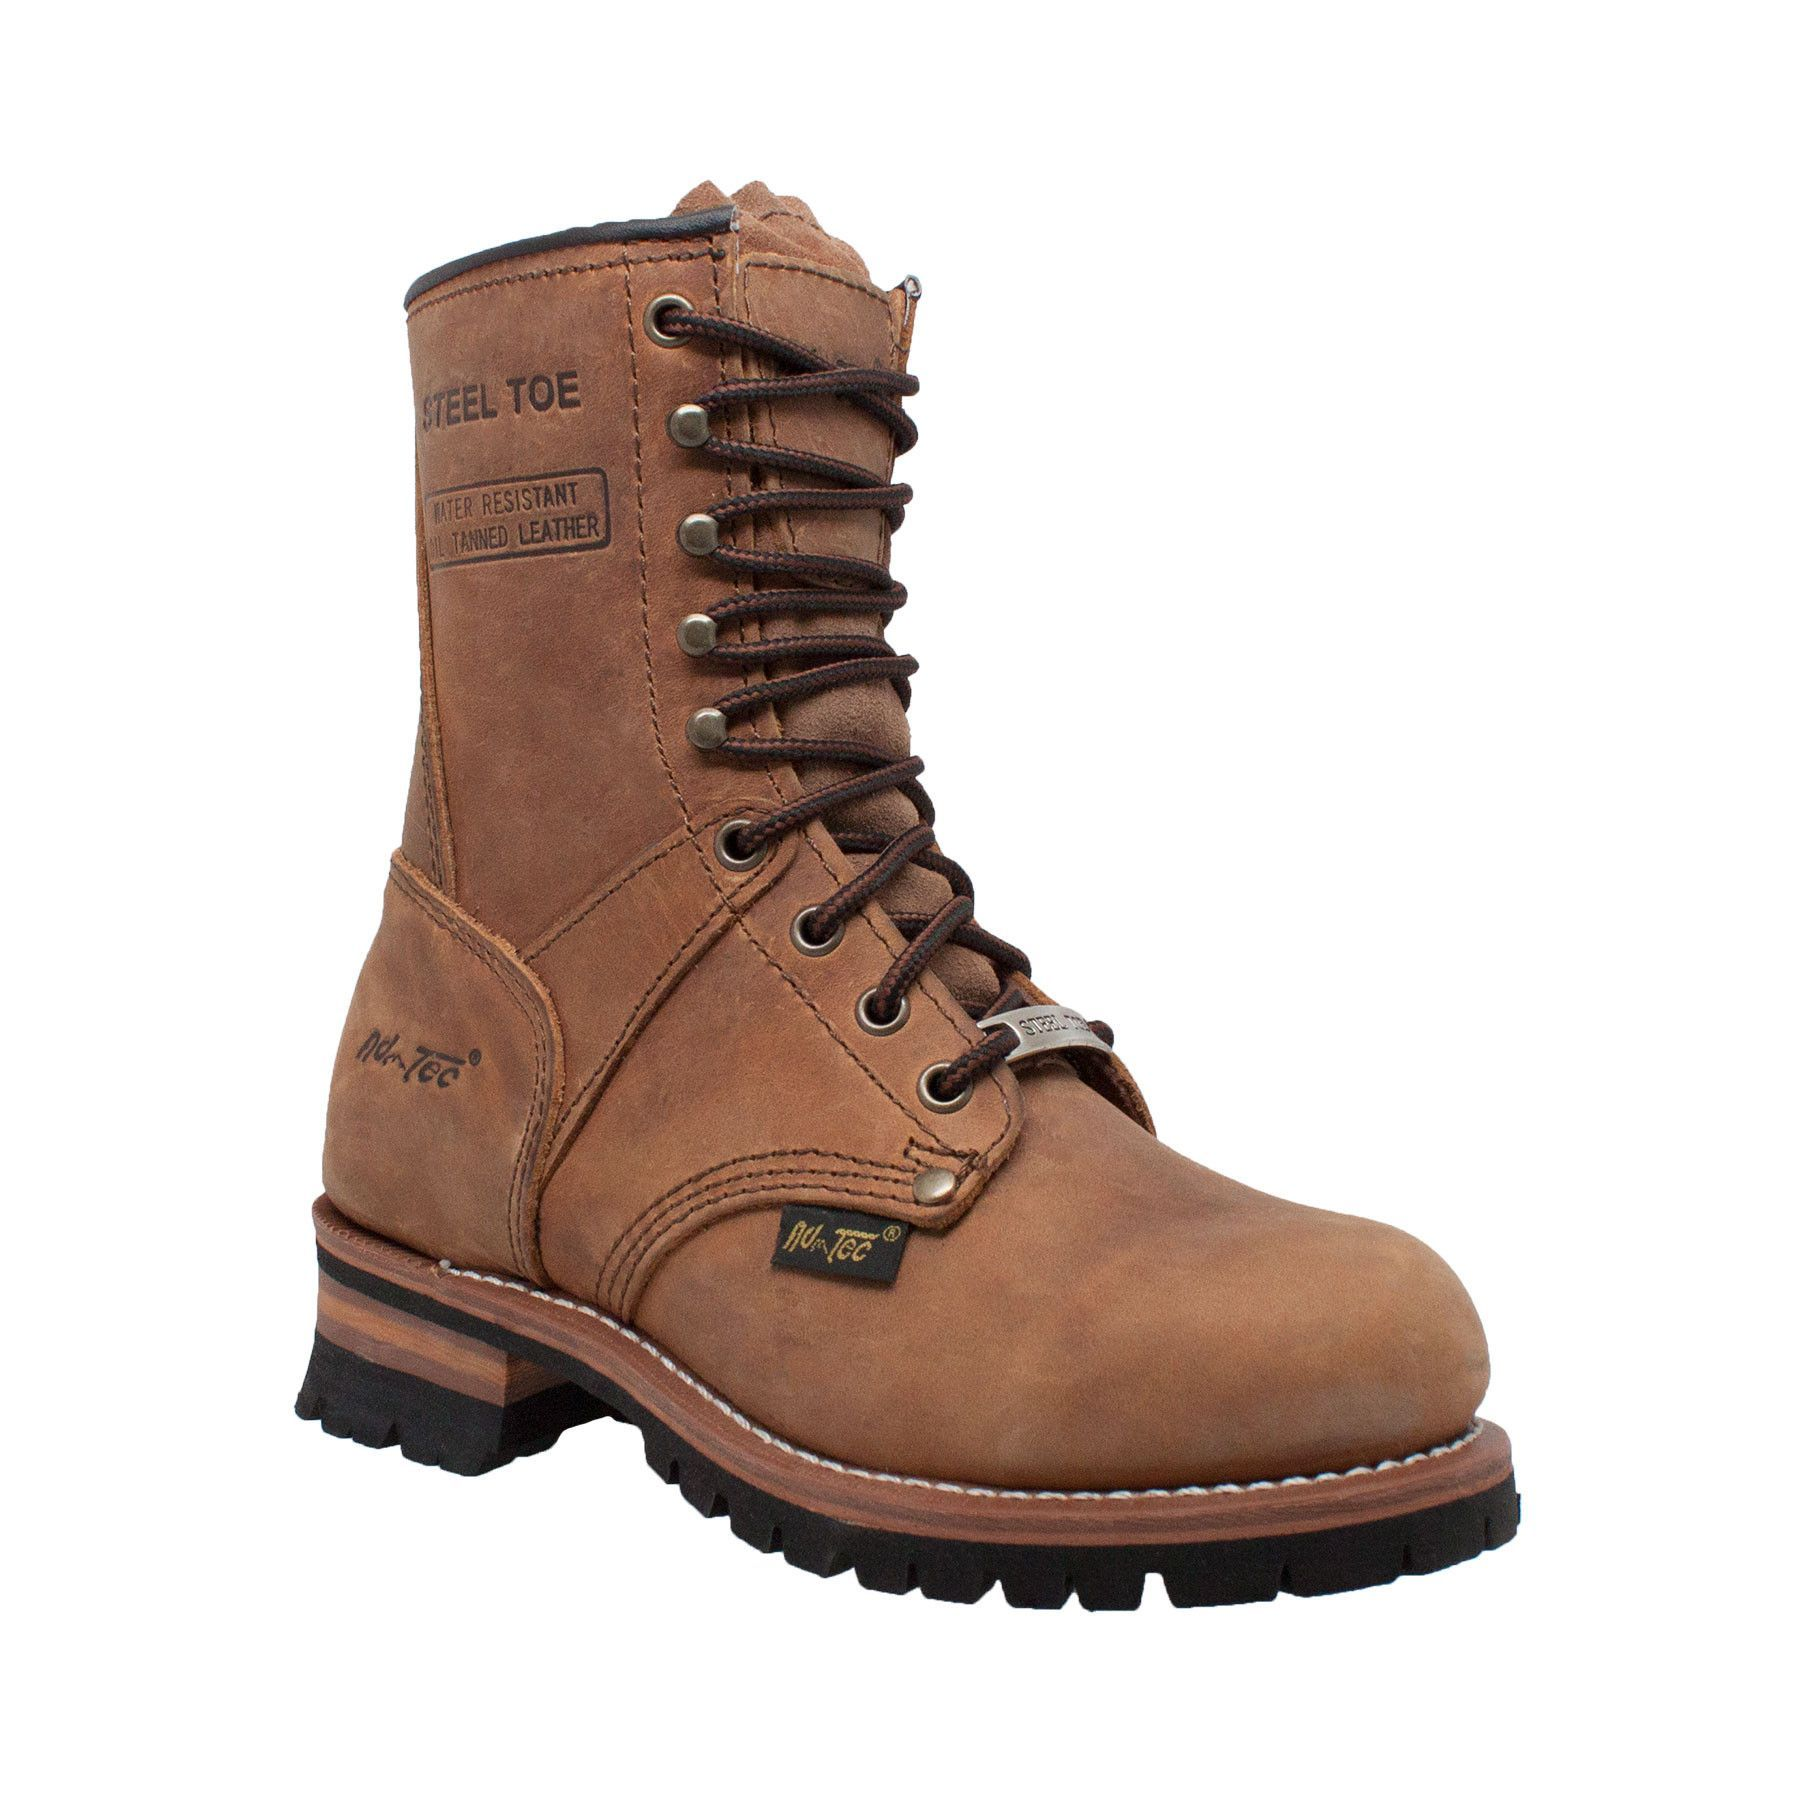 AdTec Womens Brown 9in Steel Toe Logger Leather Work Boots ...